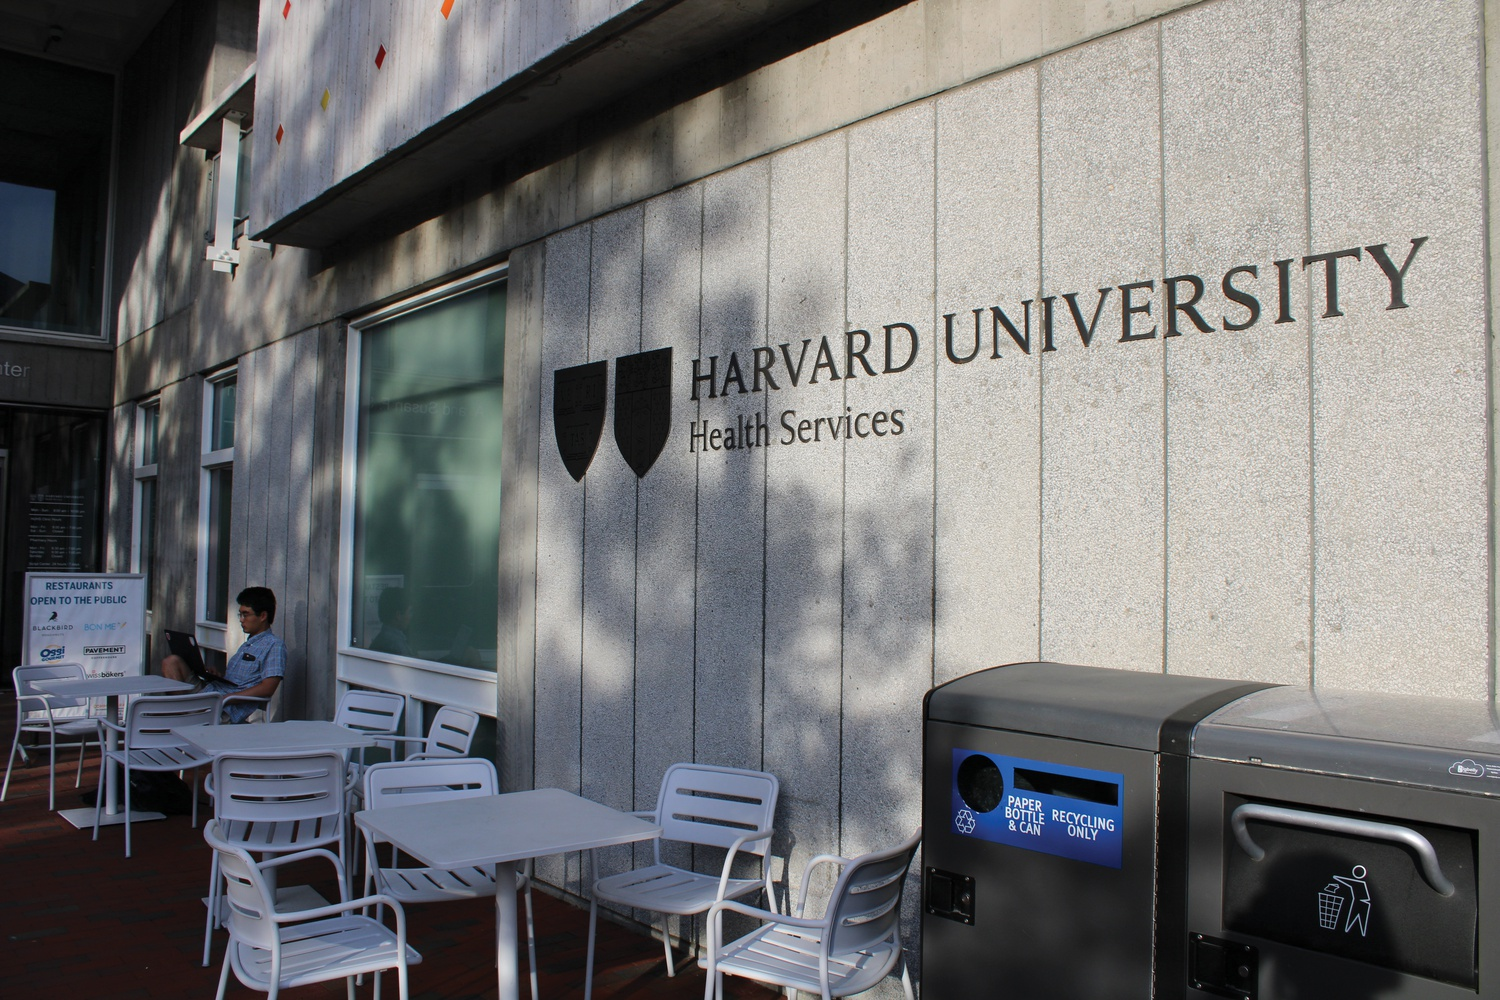 Harvard University Health Services is housed in the Smith Campus Center.